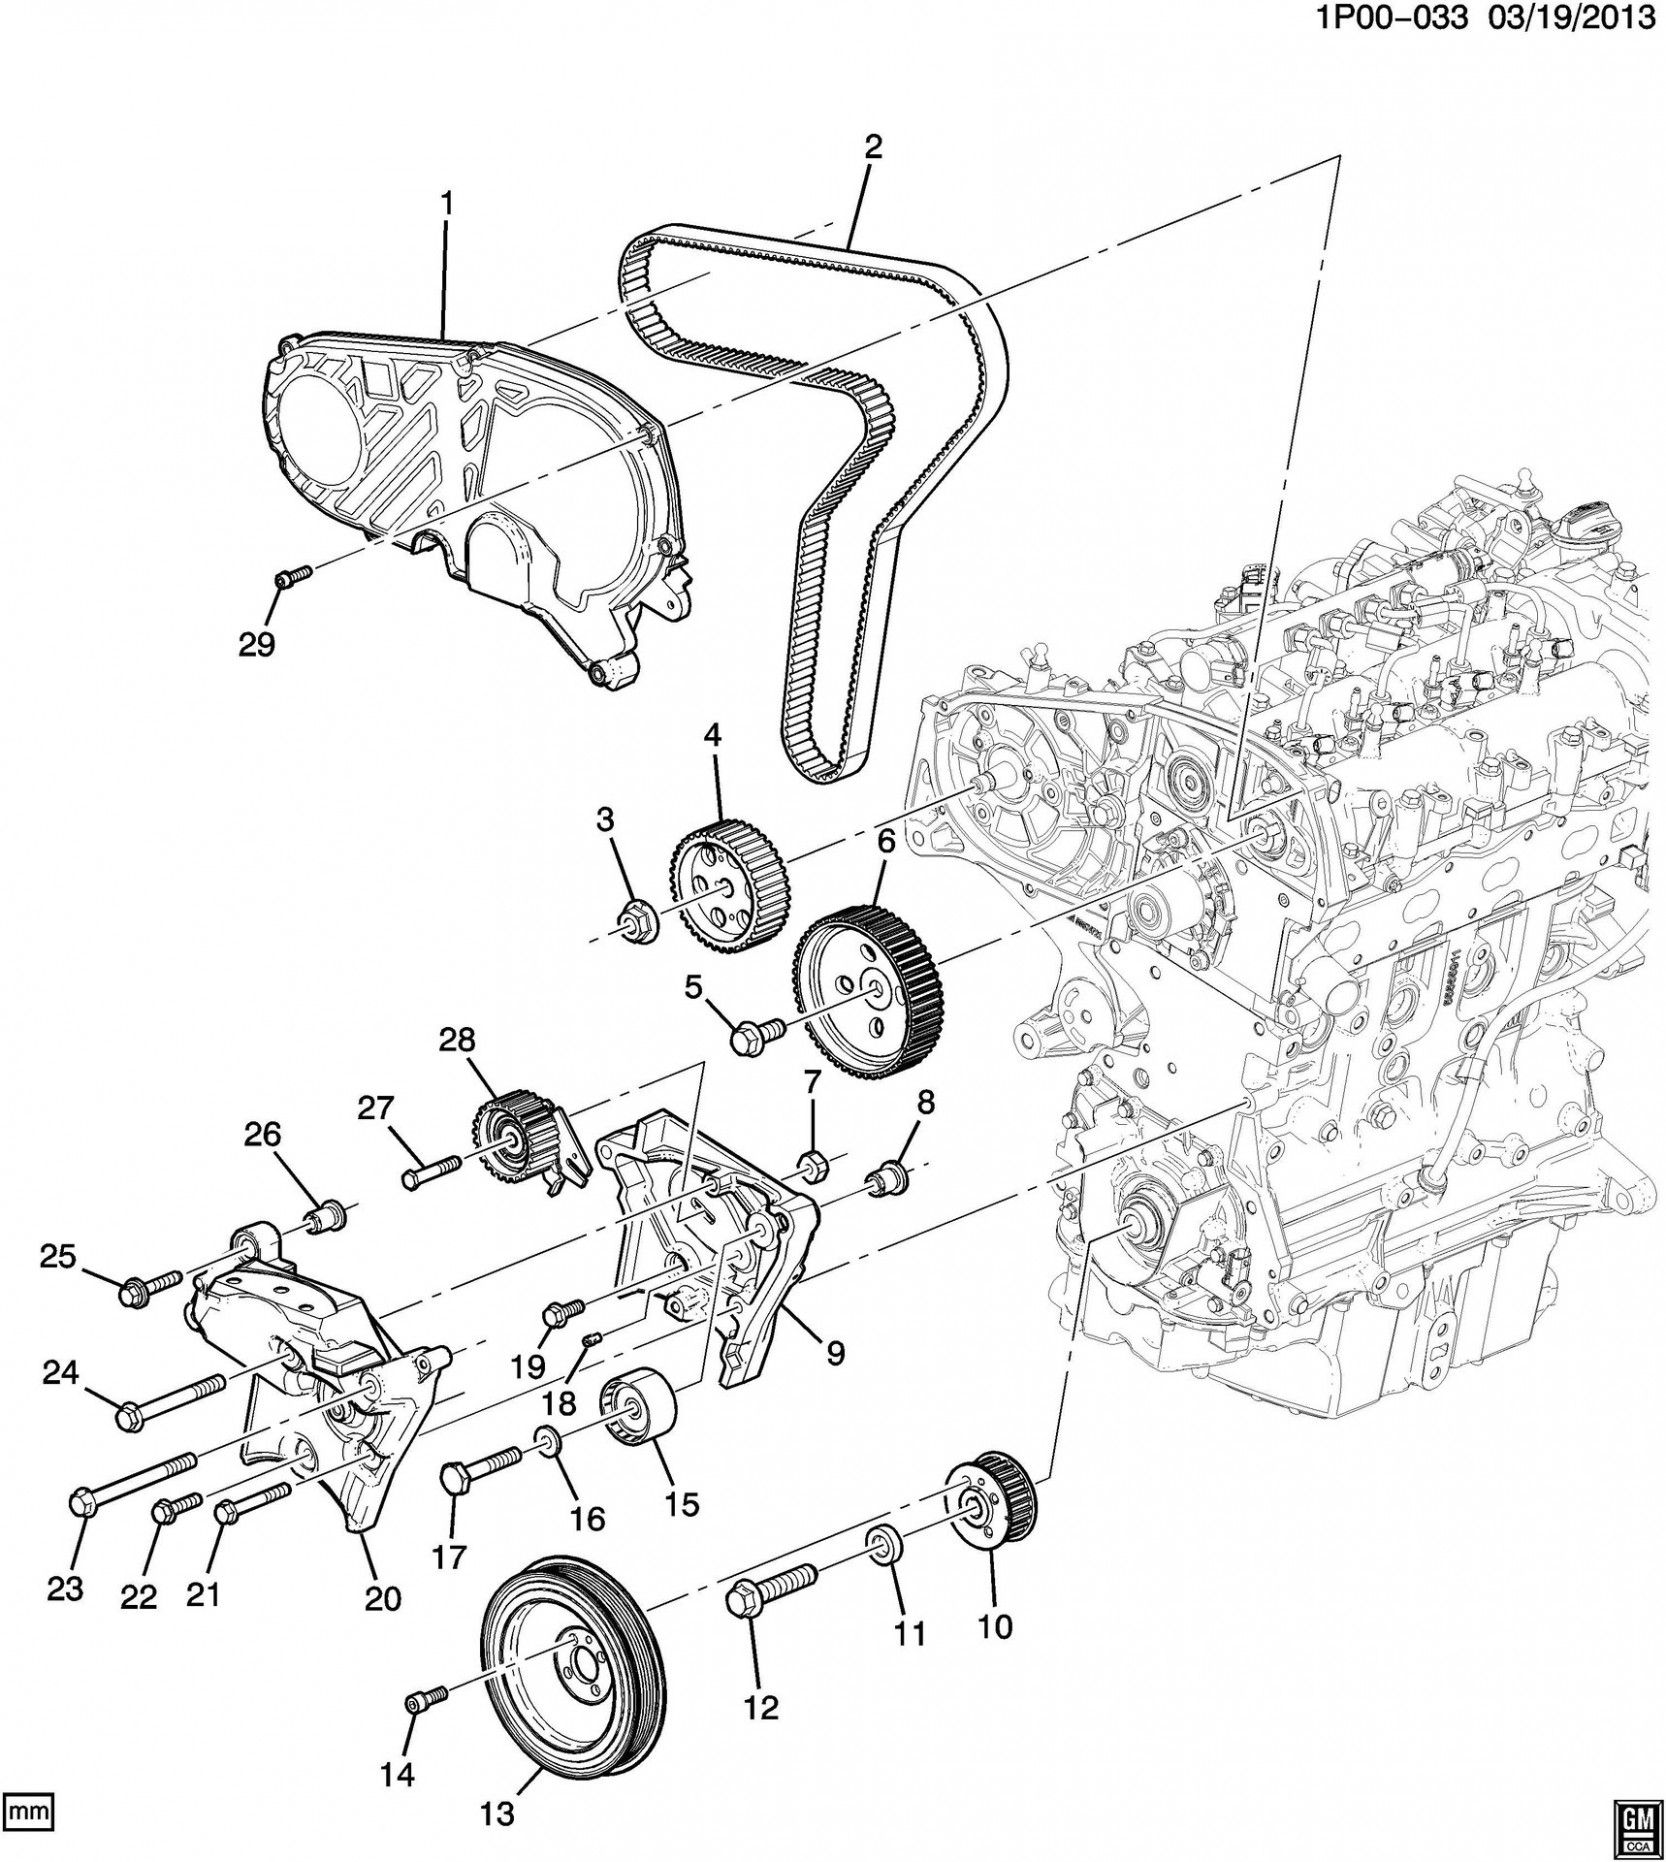 7 Chevy Cruzesel Engine Diagram Di